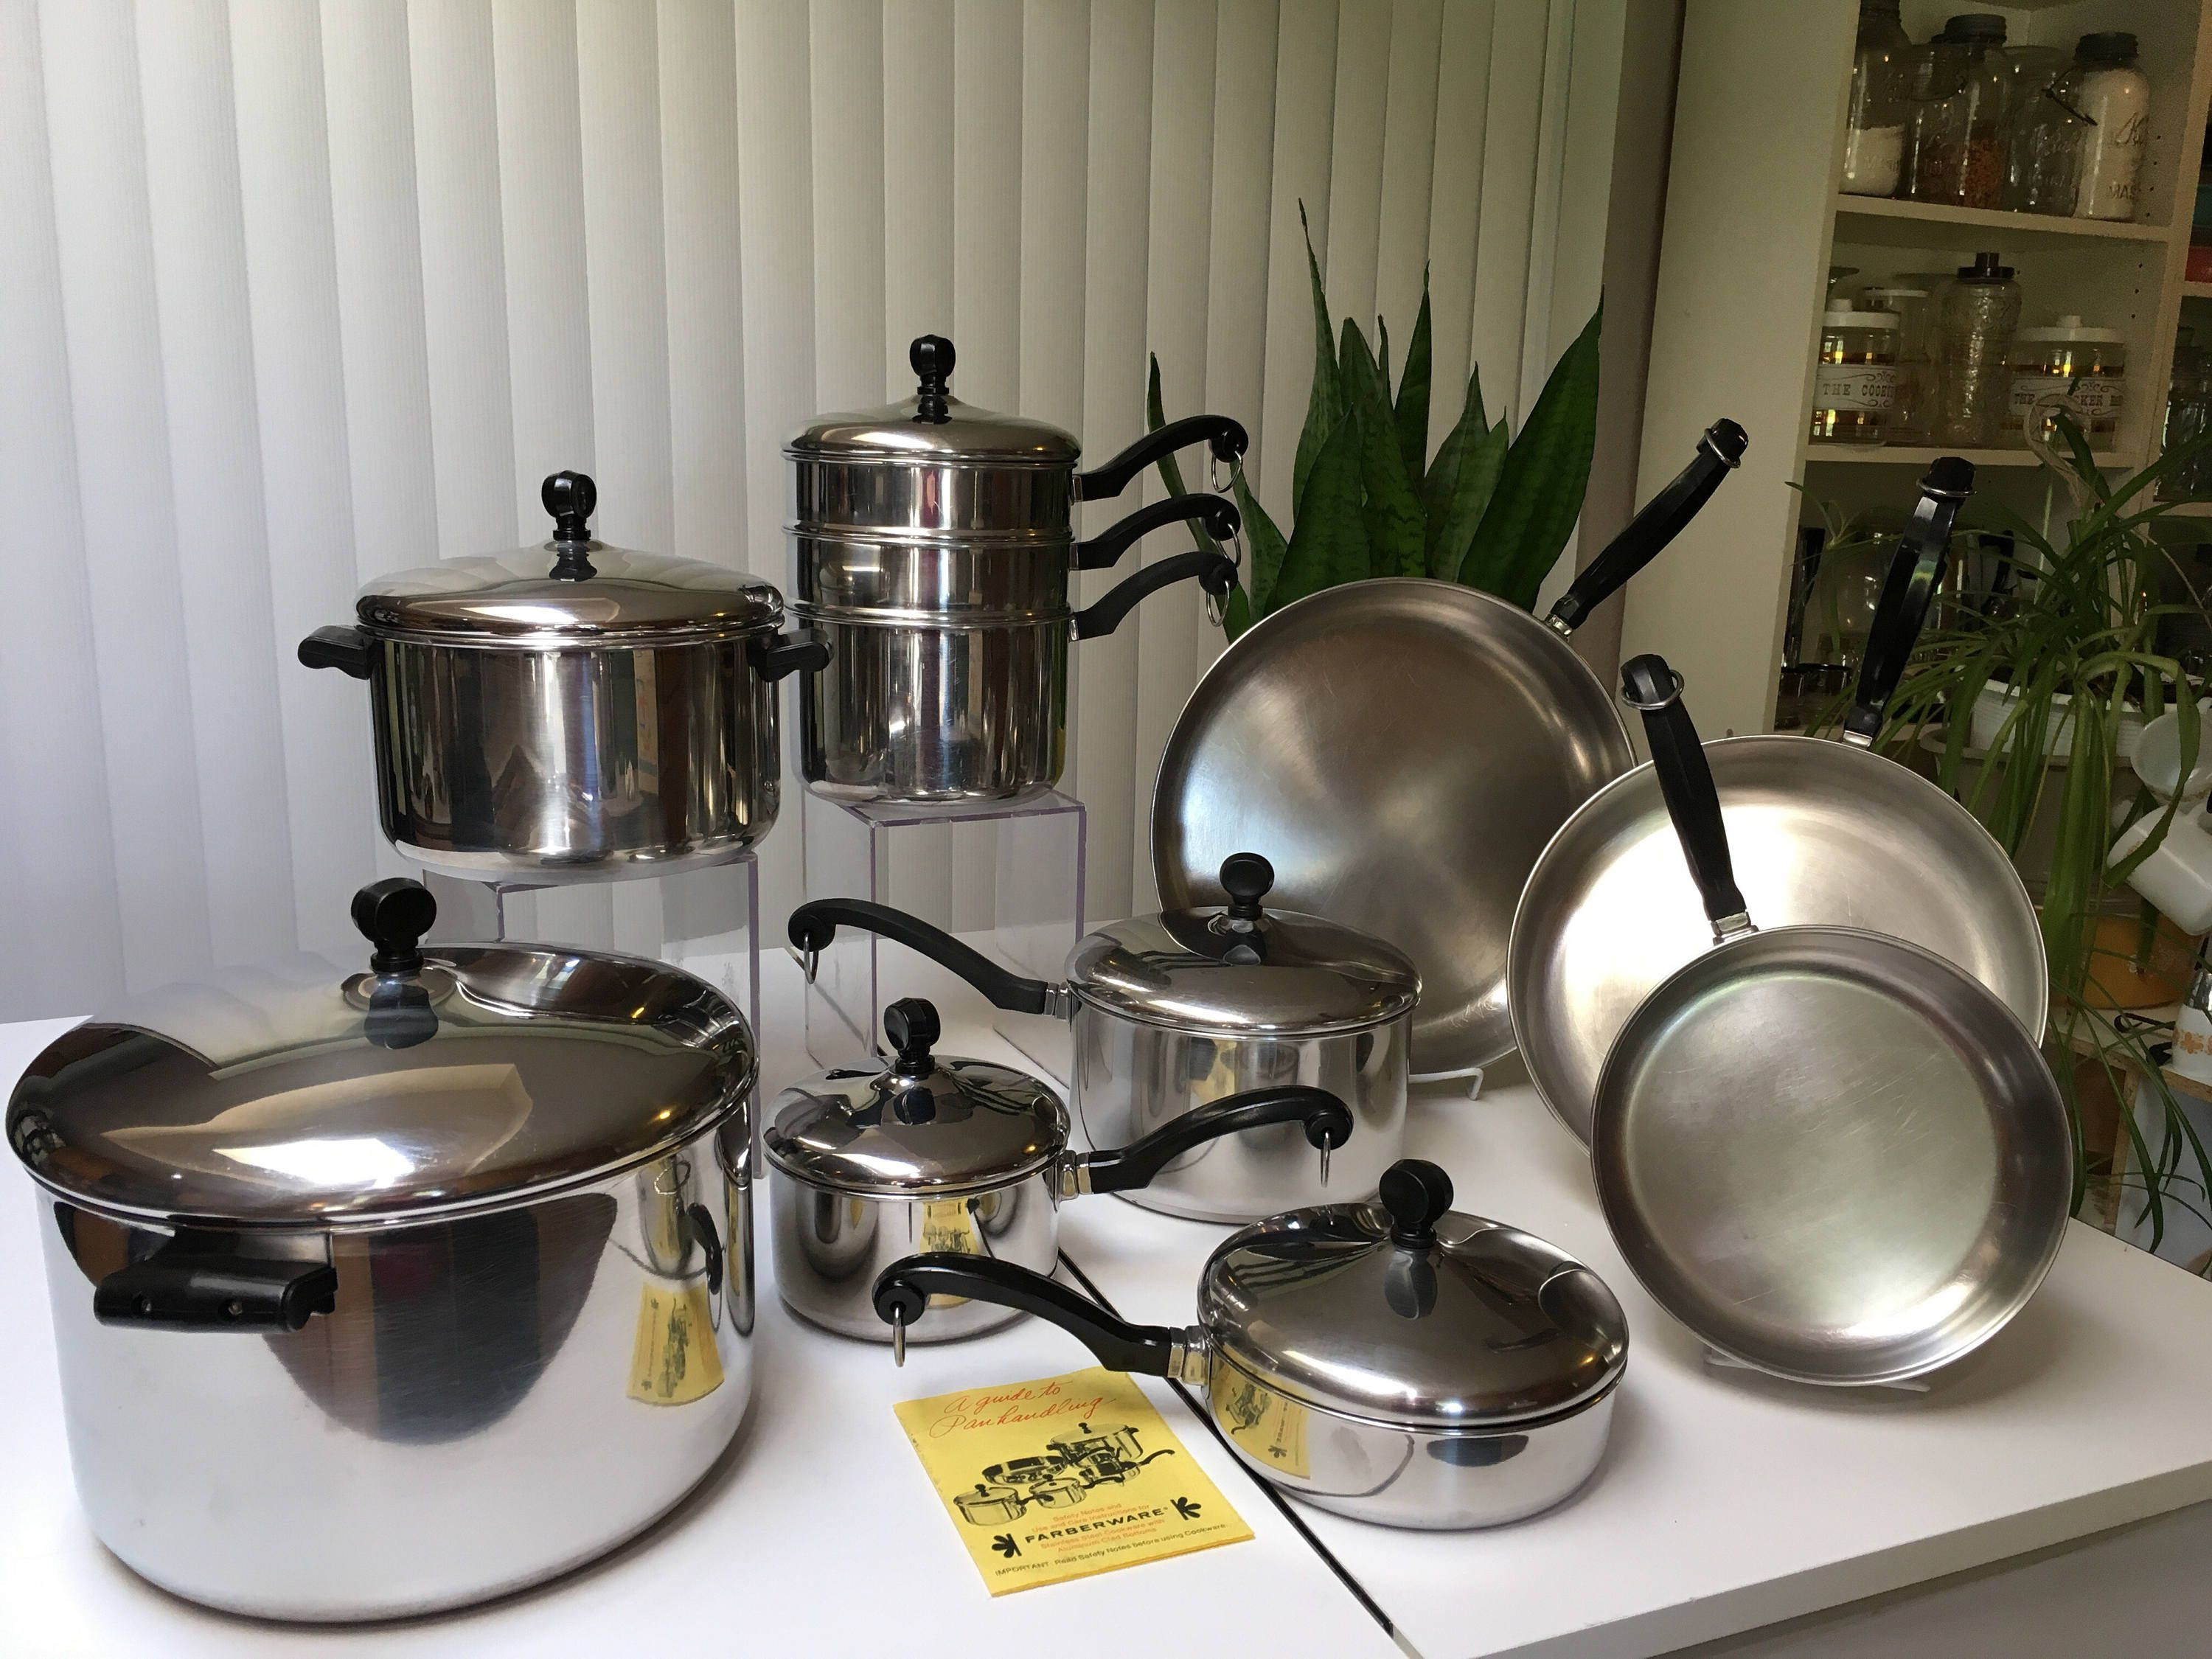 Vintage Farberware Cookware Set 17pc Stainless Steel Aluminum Clad Usa Made Ny By Retroreplacements On Etsy